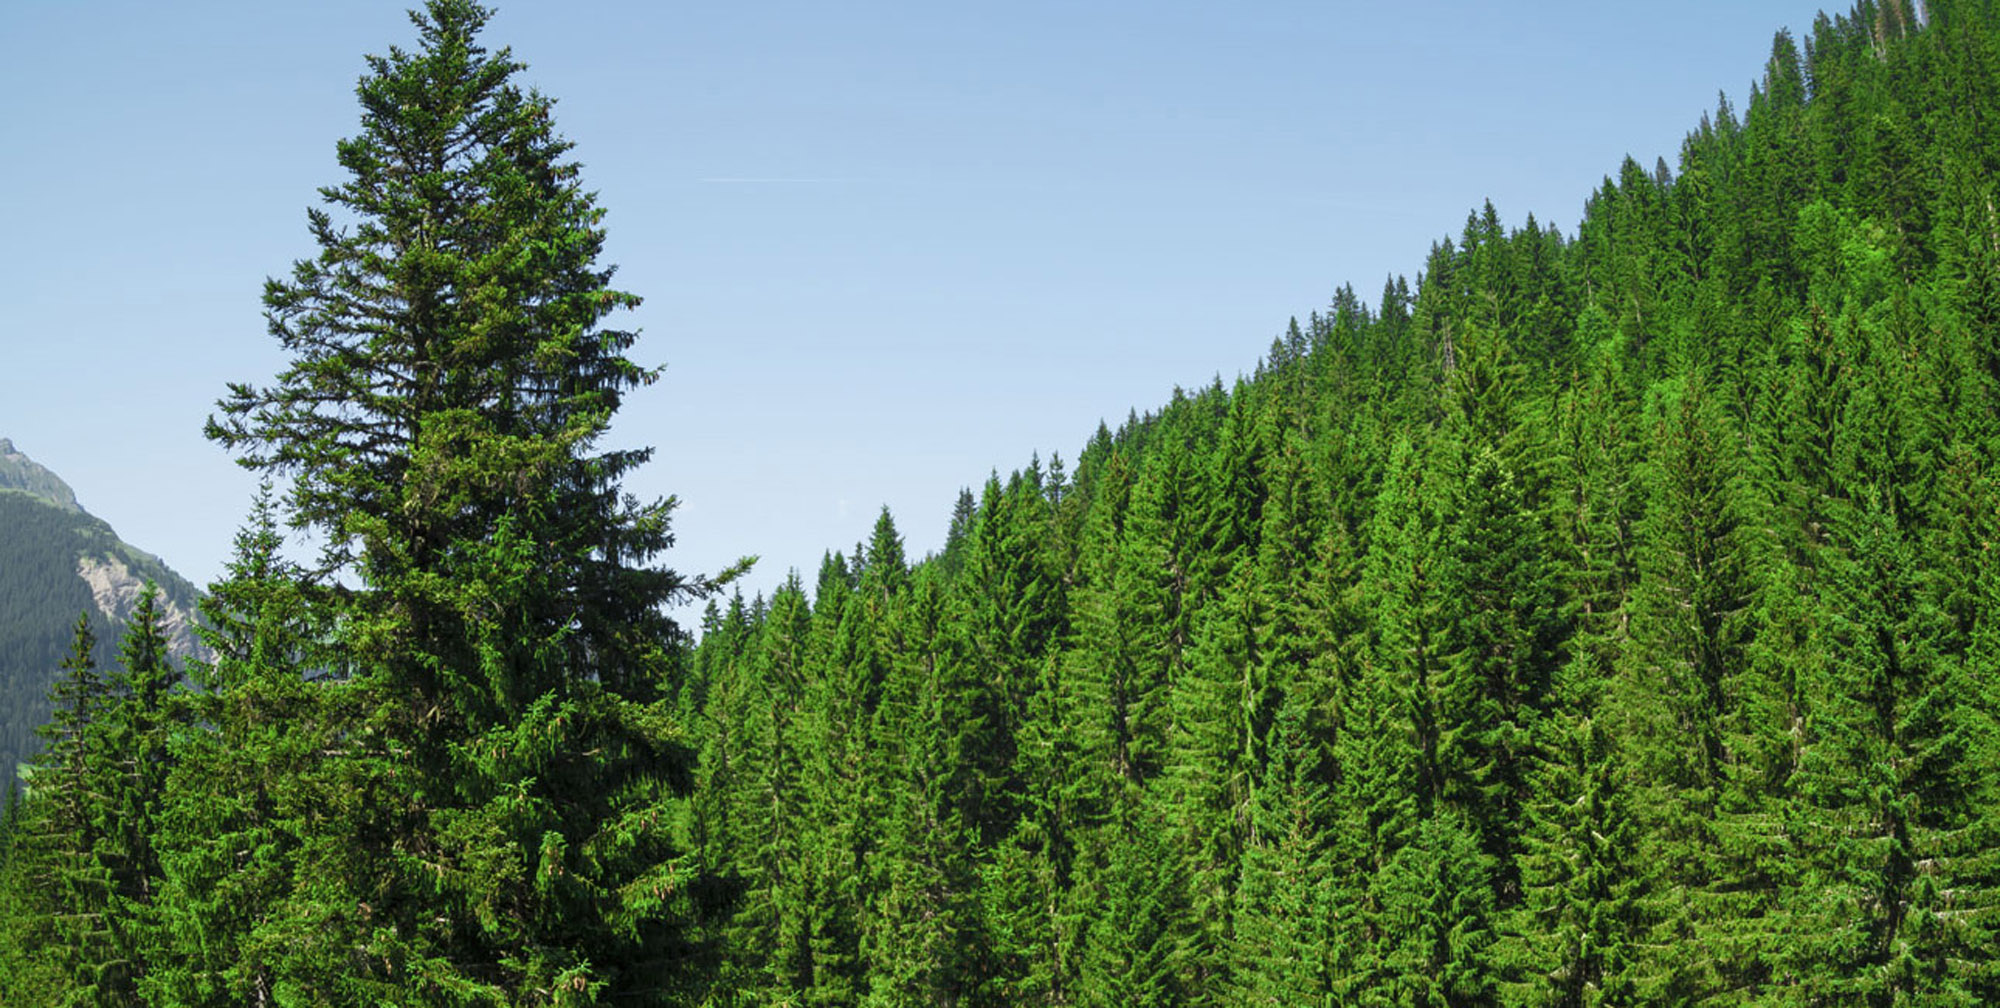 EnviroVision Solutions | ForestWatch Environmental Monitoring System